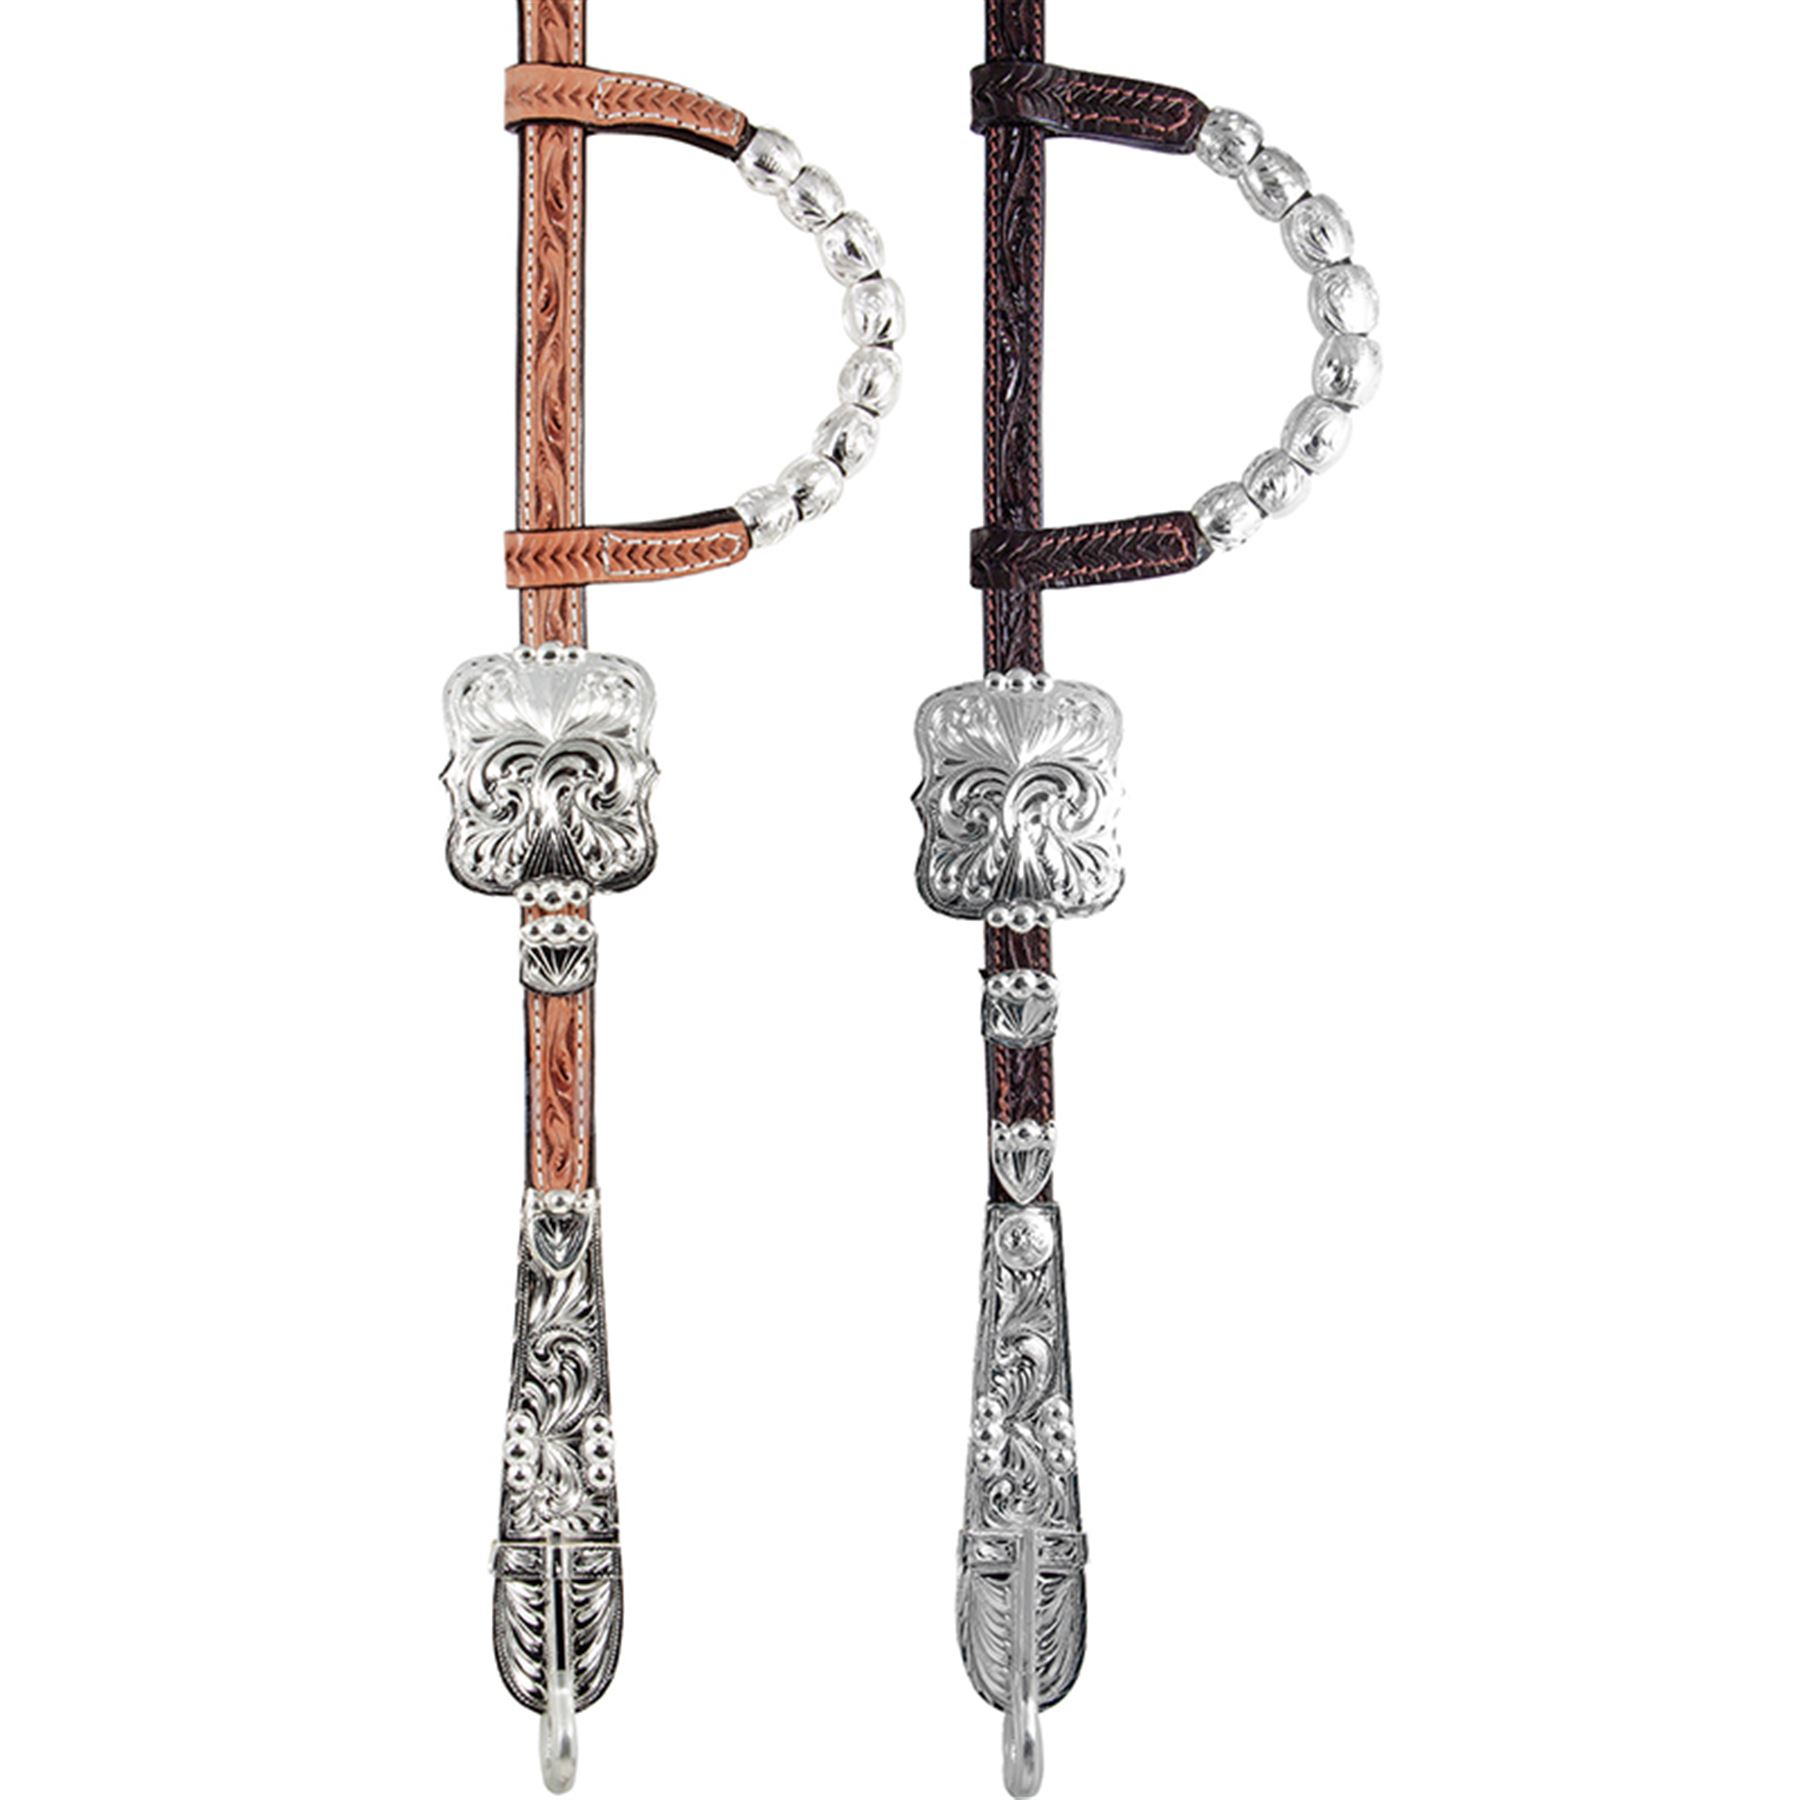 Billy Royal Tempe Sp Teardrop Headstall In Billy Royal